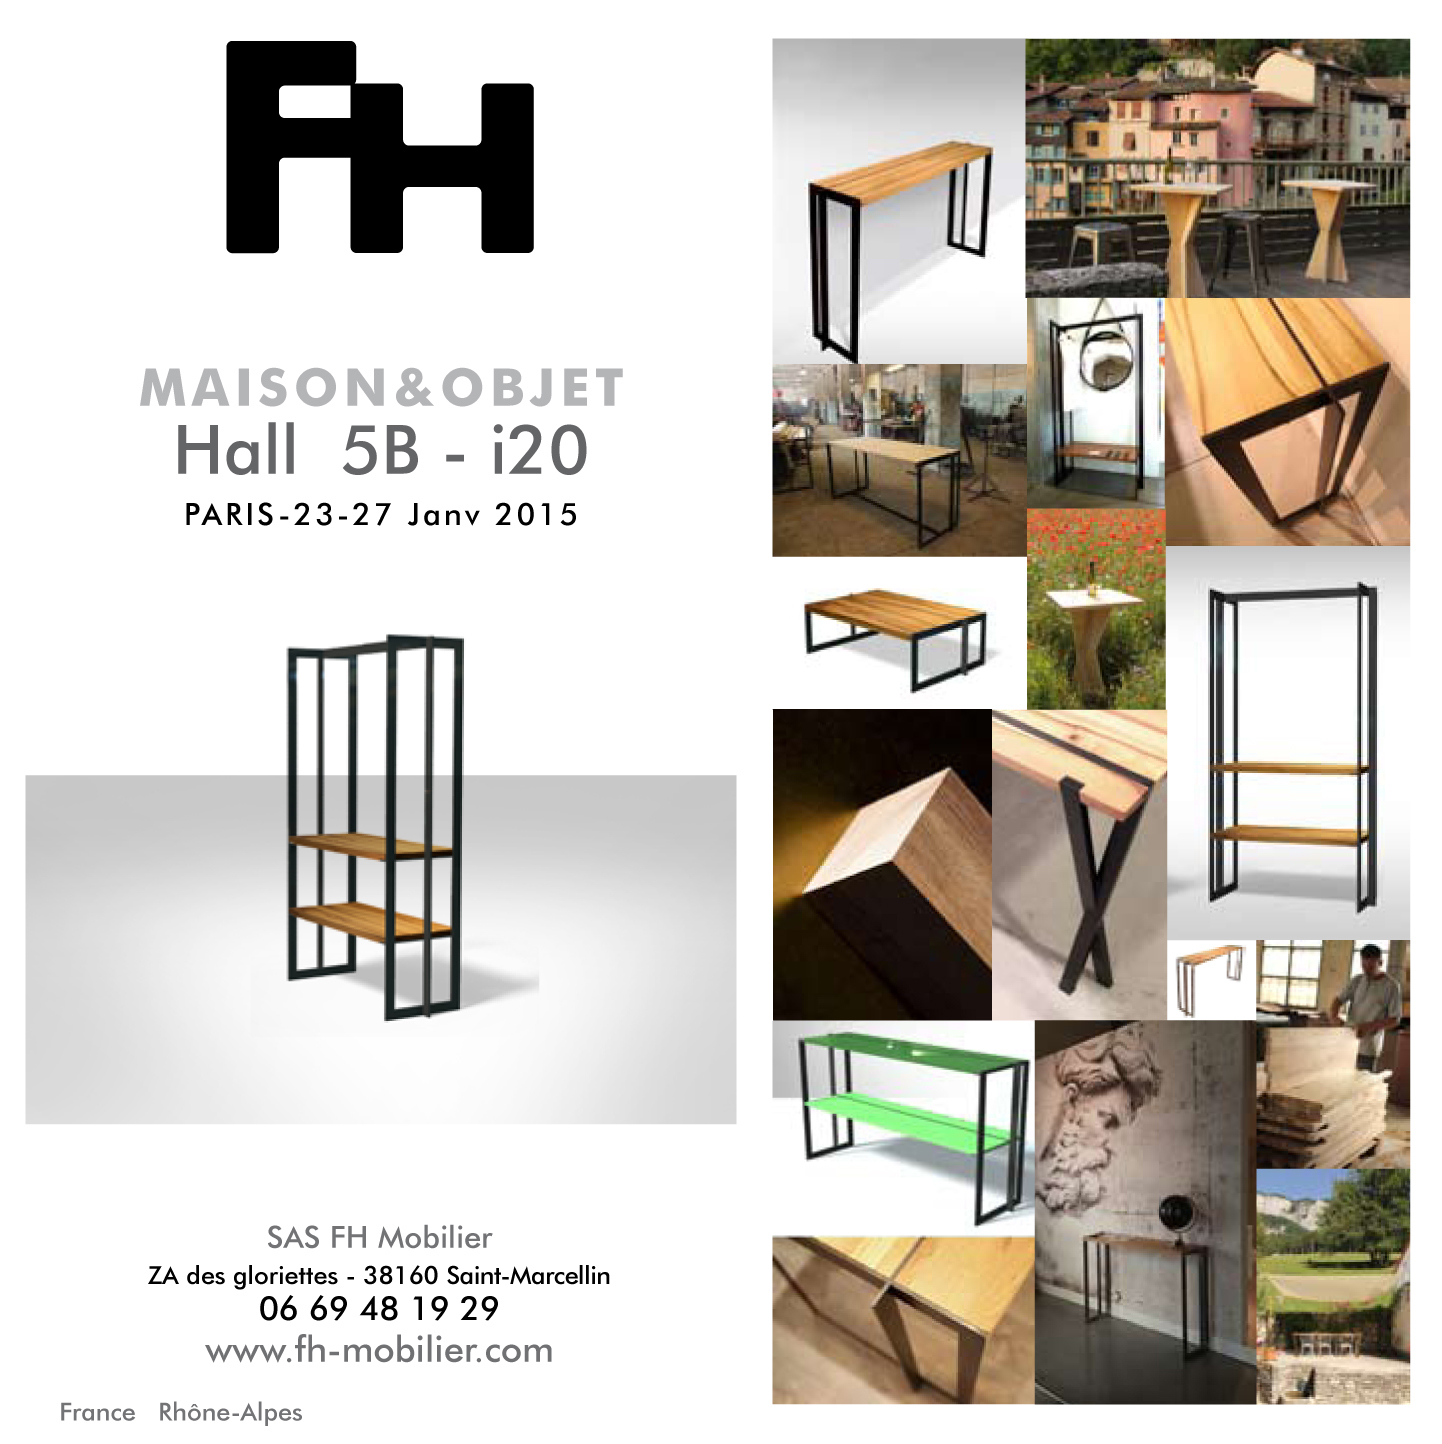 maison objet paris 23 27 janvier 2015 fh mobilier. Black Bedroom Furniture Sets. Home Design Ideas